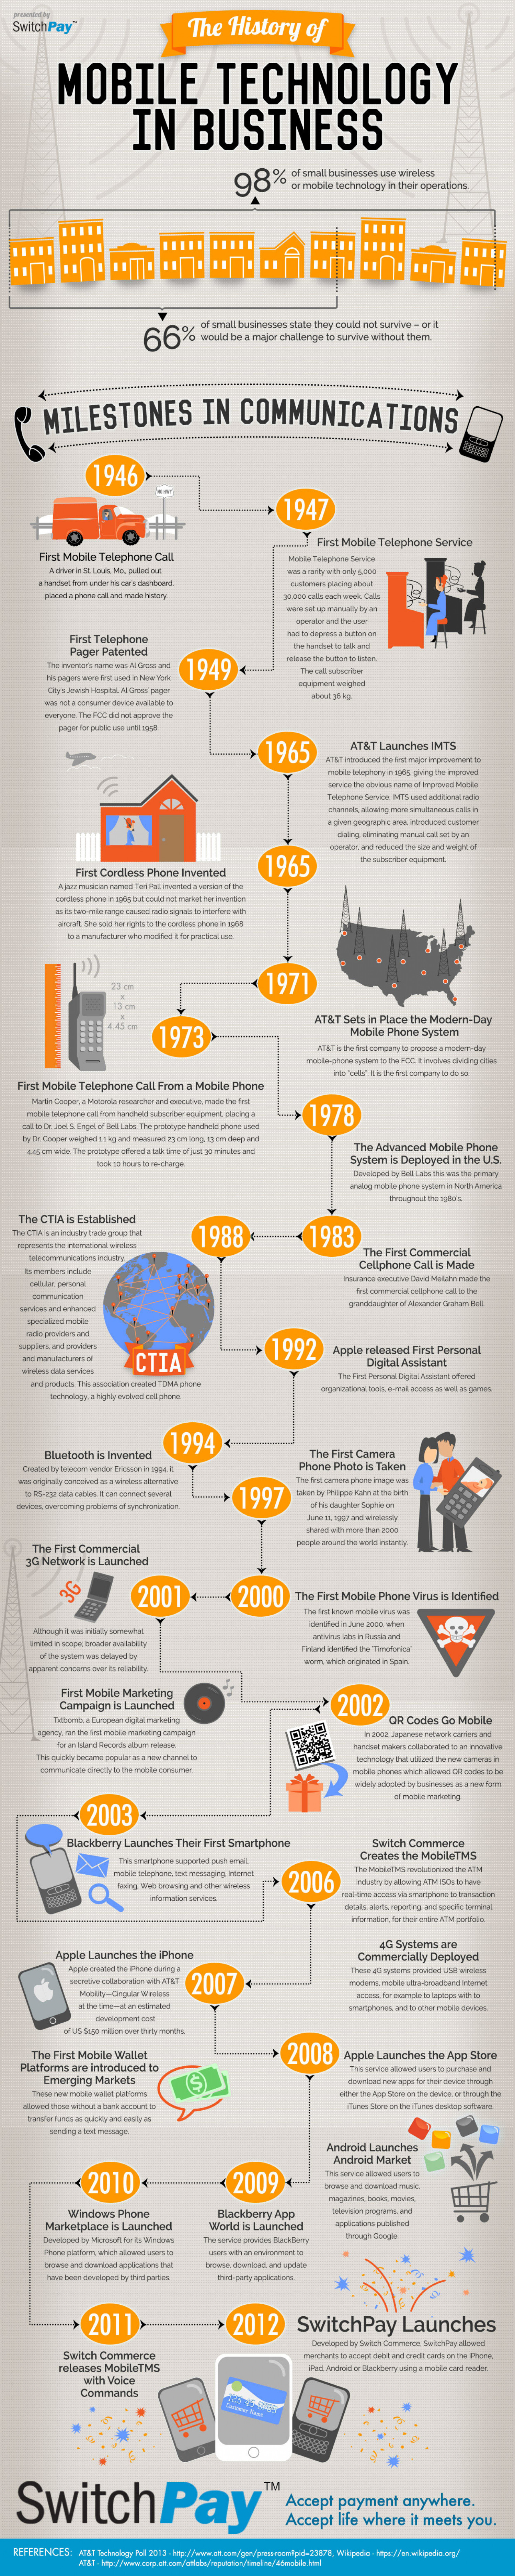 The History of Mobile Technology in Business Infographic